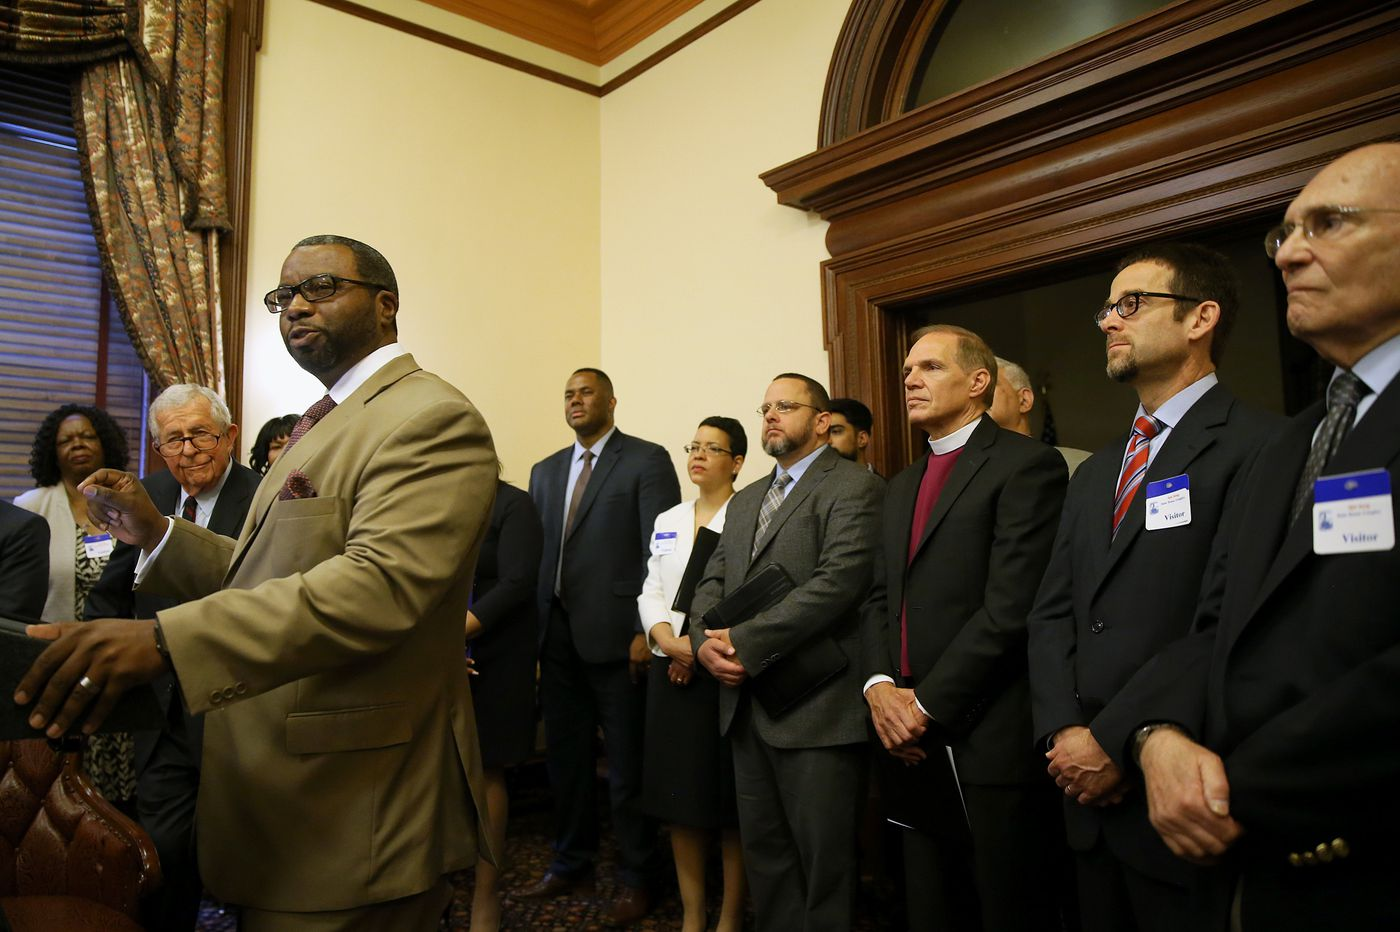 New Jersey should step up on civil rights as Washington steps down | Opinion